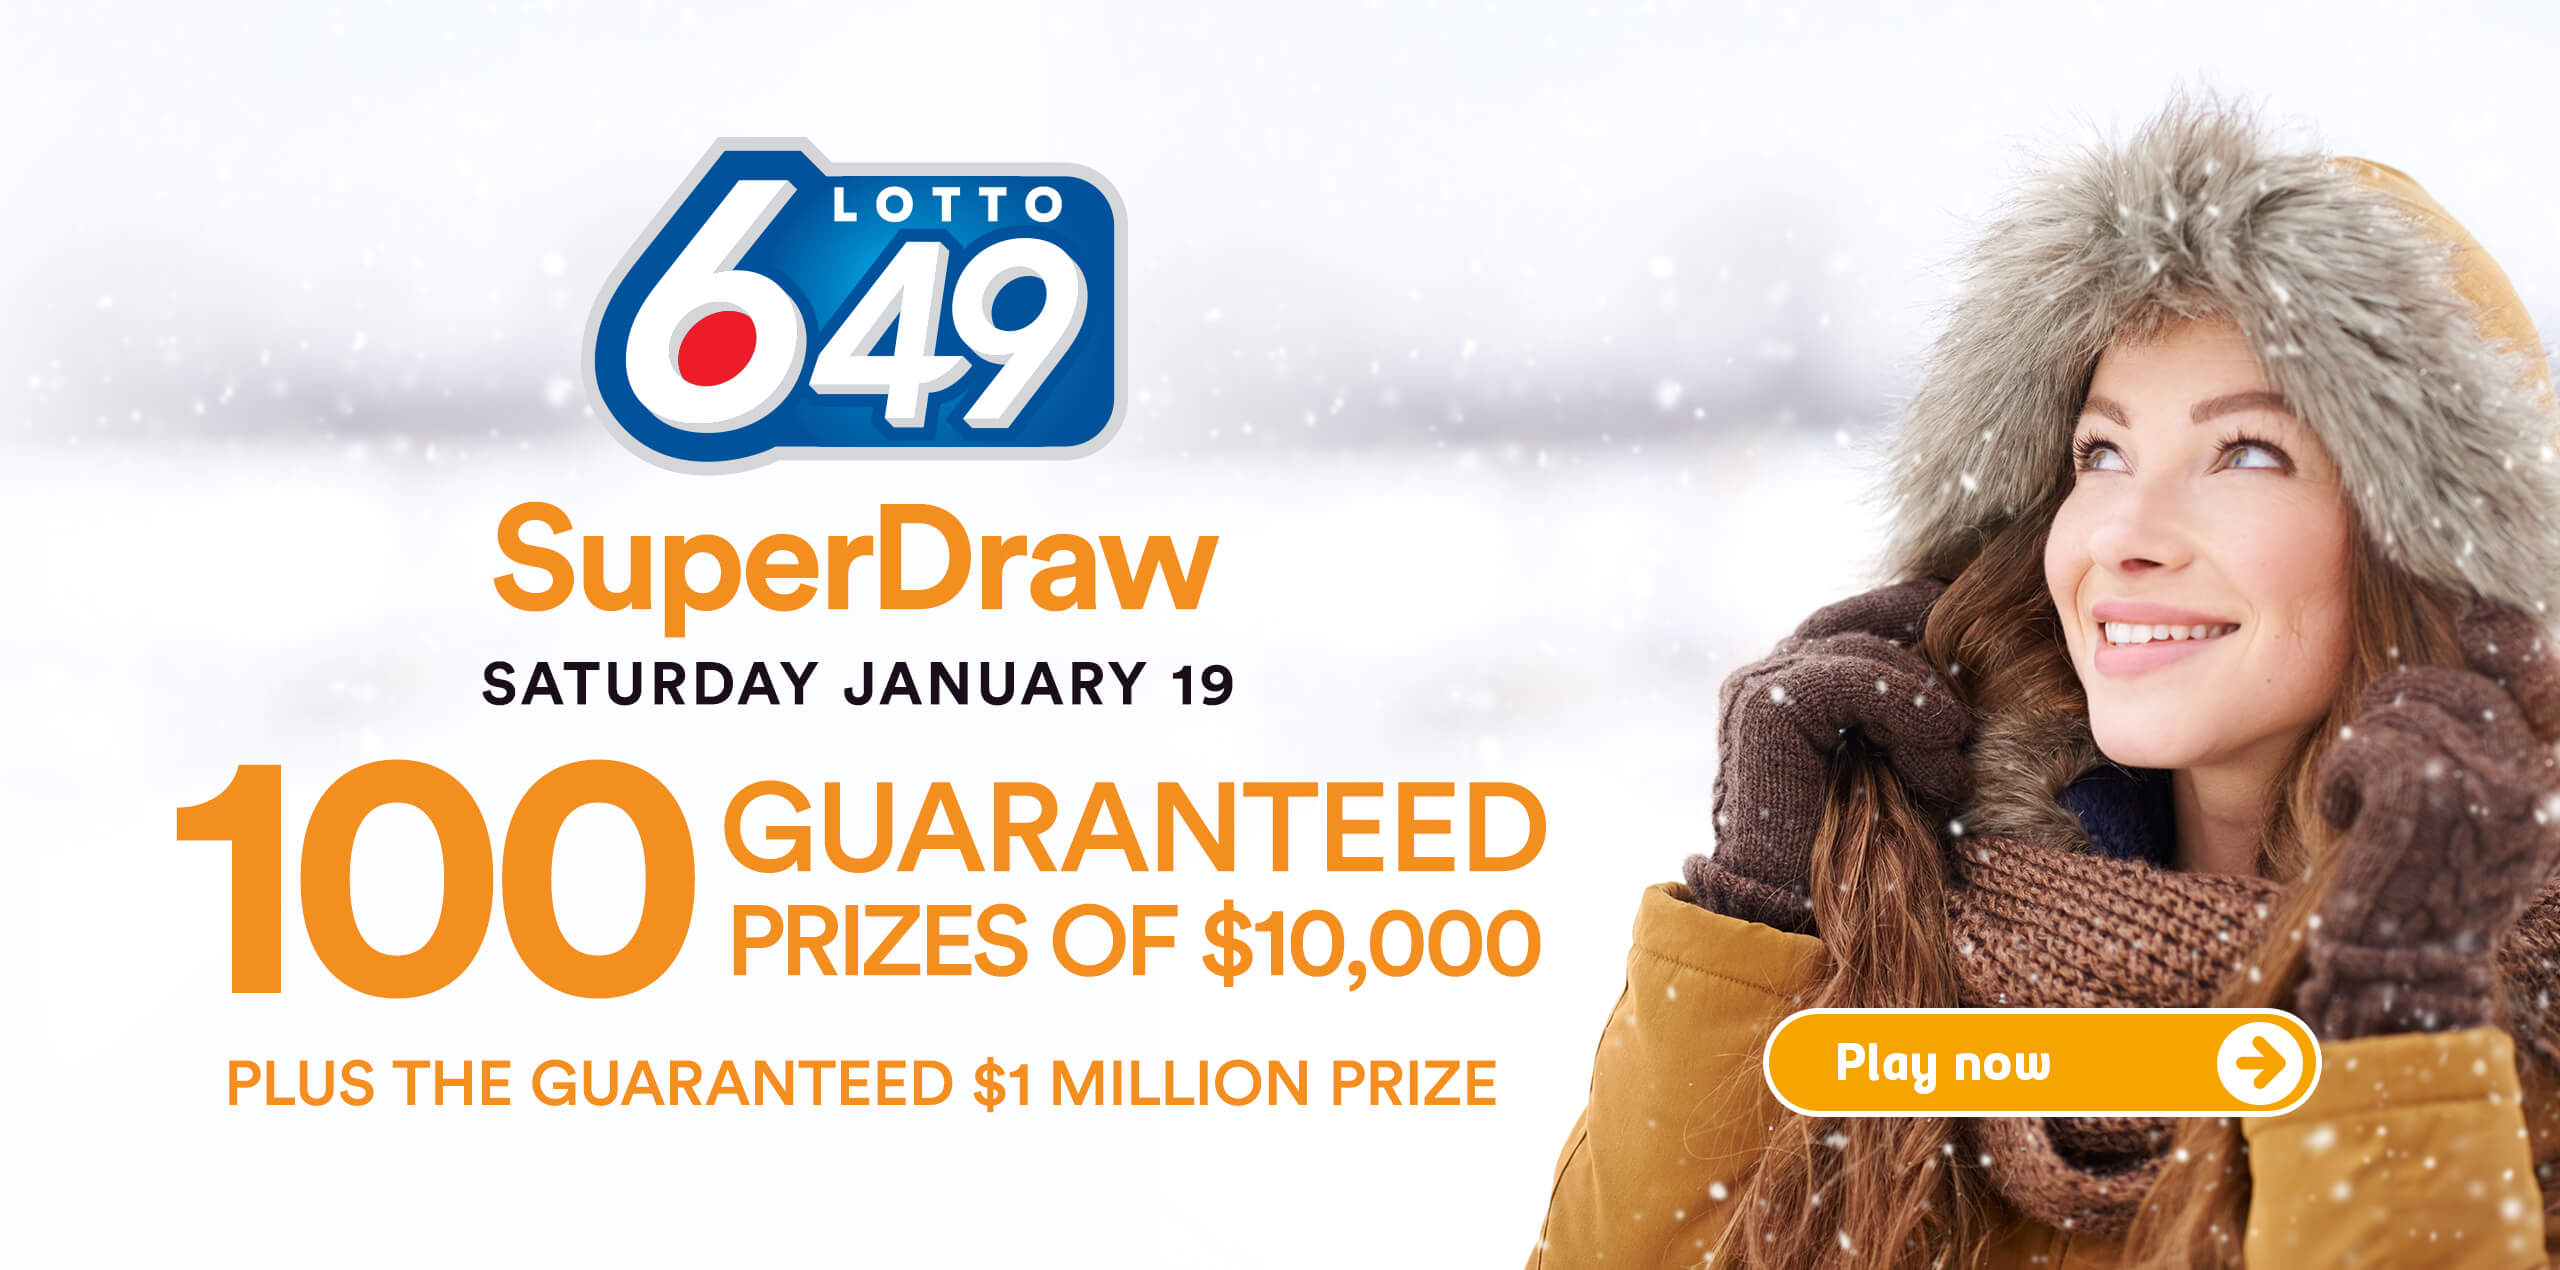 LOTTO 649 SuperDraw Saturday January 19 - 100 GUARANTEED PRIZES OF $10,000 - PLUS THE GUARANTEED $1 MILLION PRIZE - Play now